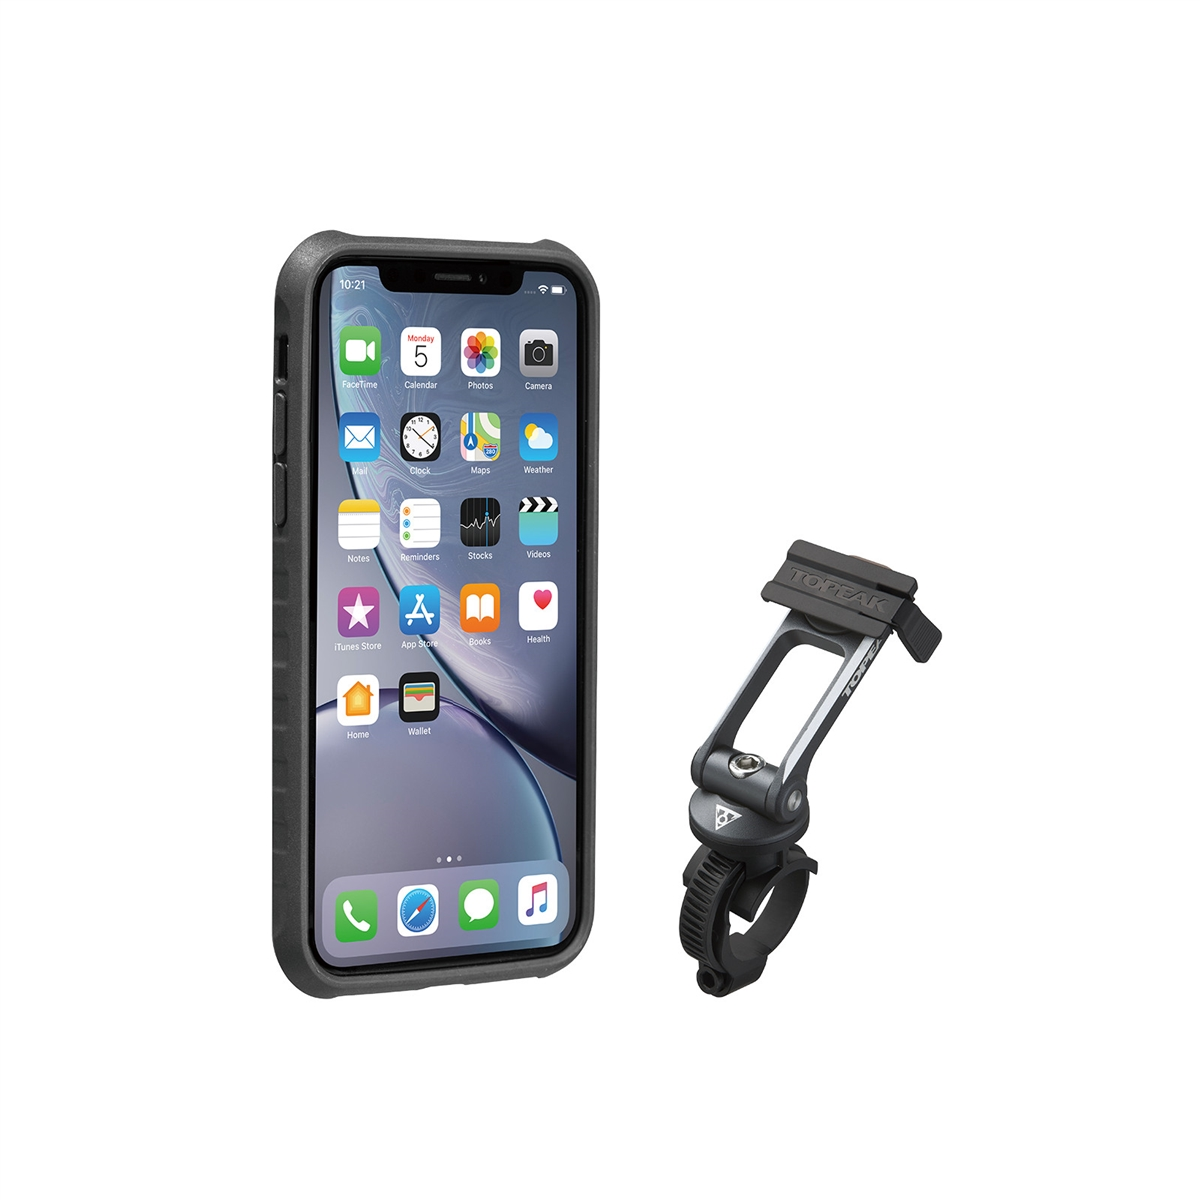 RideCase for iPhone XR Black/Gray Mount Included